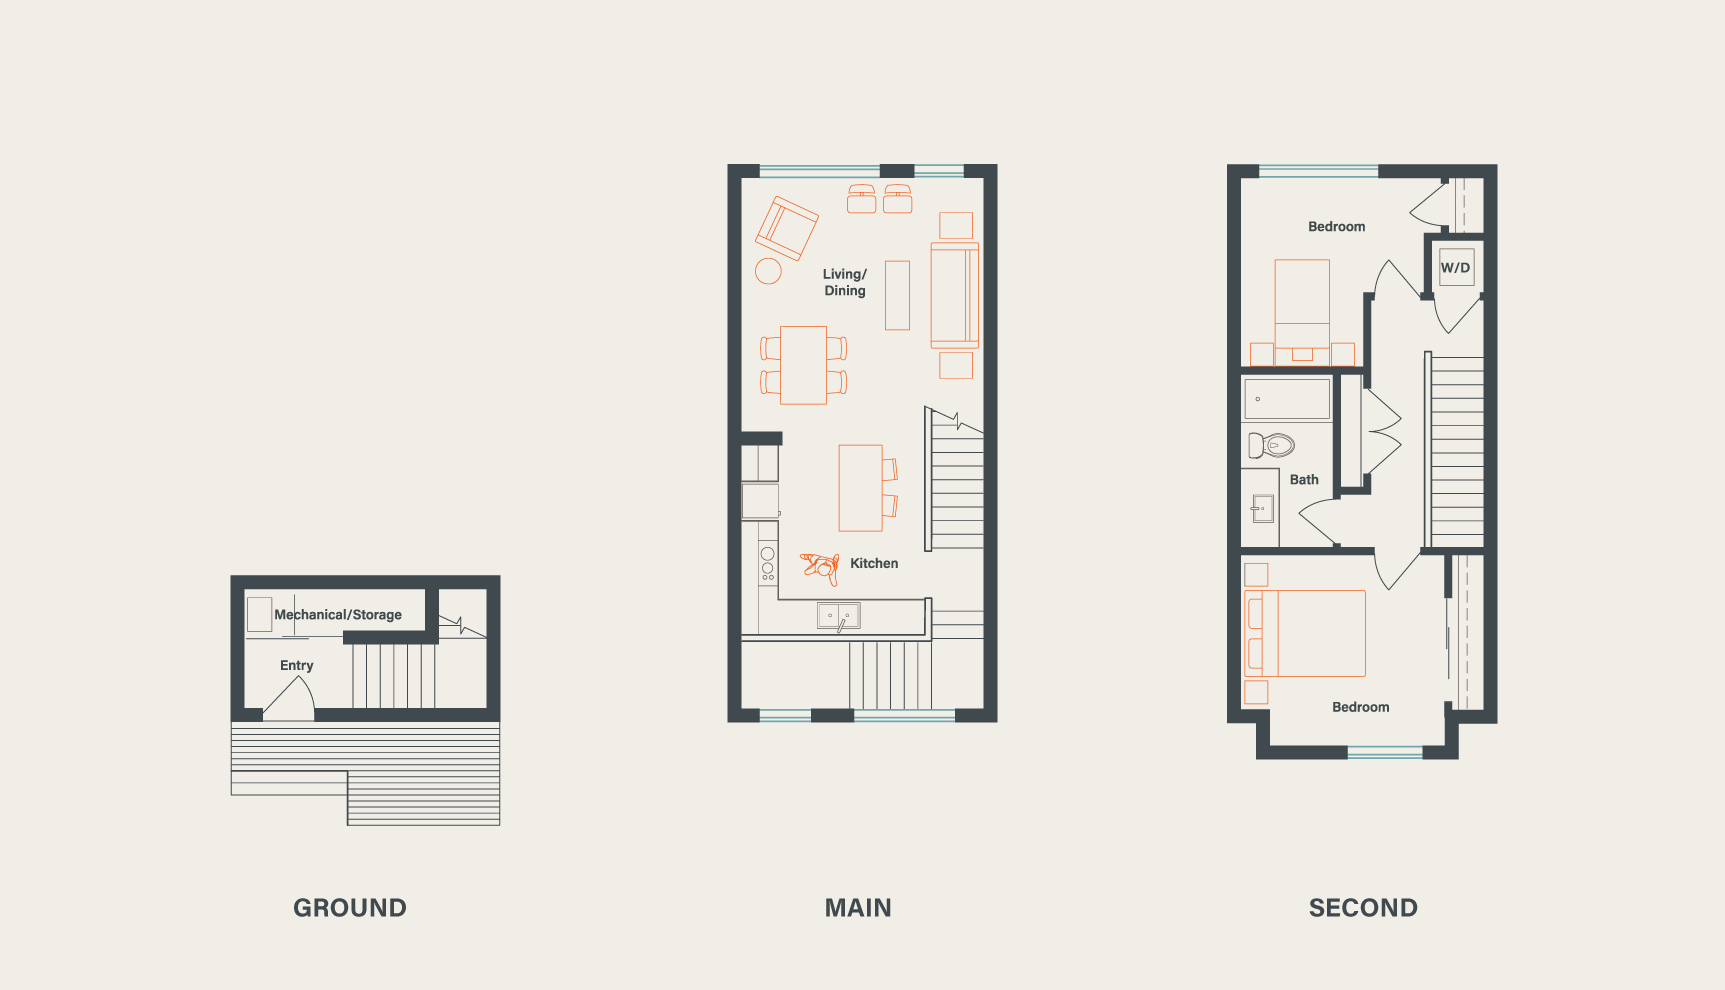 Click to enlarge floorplans